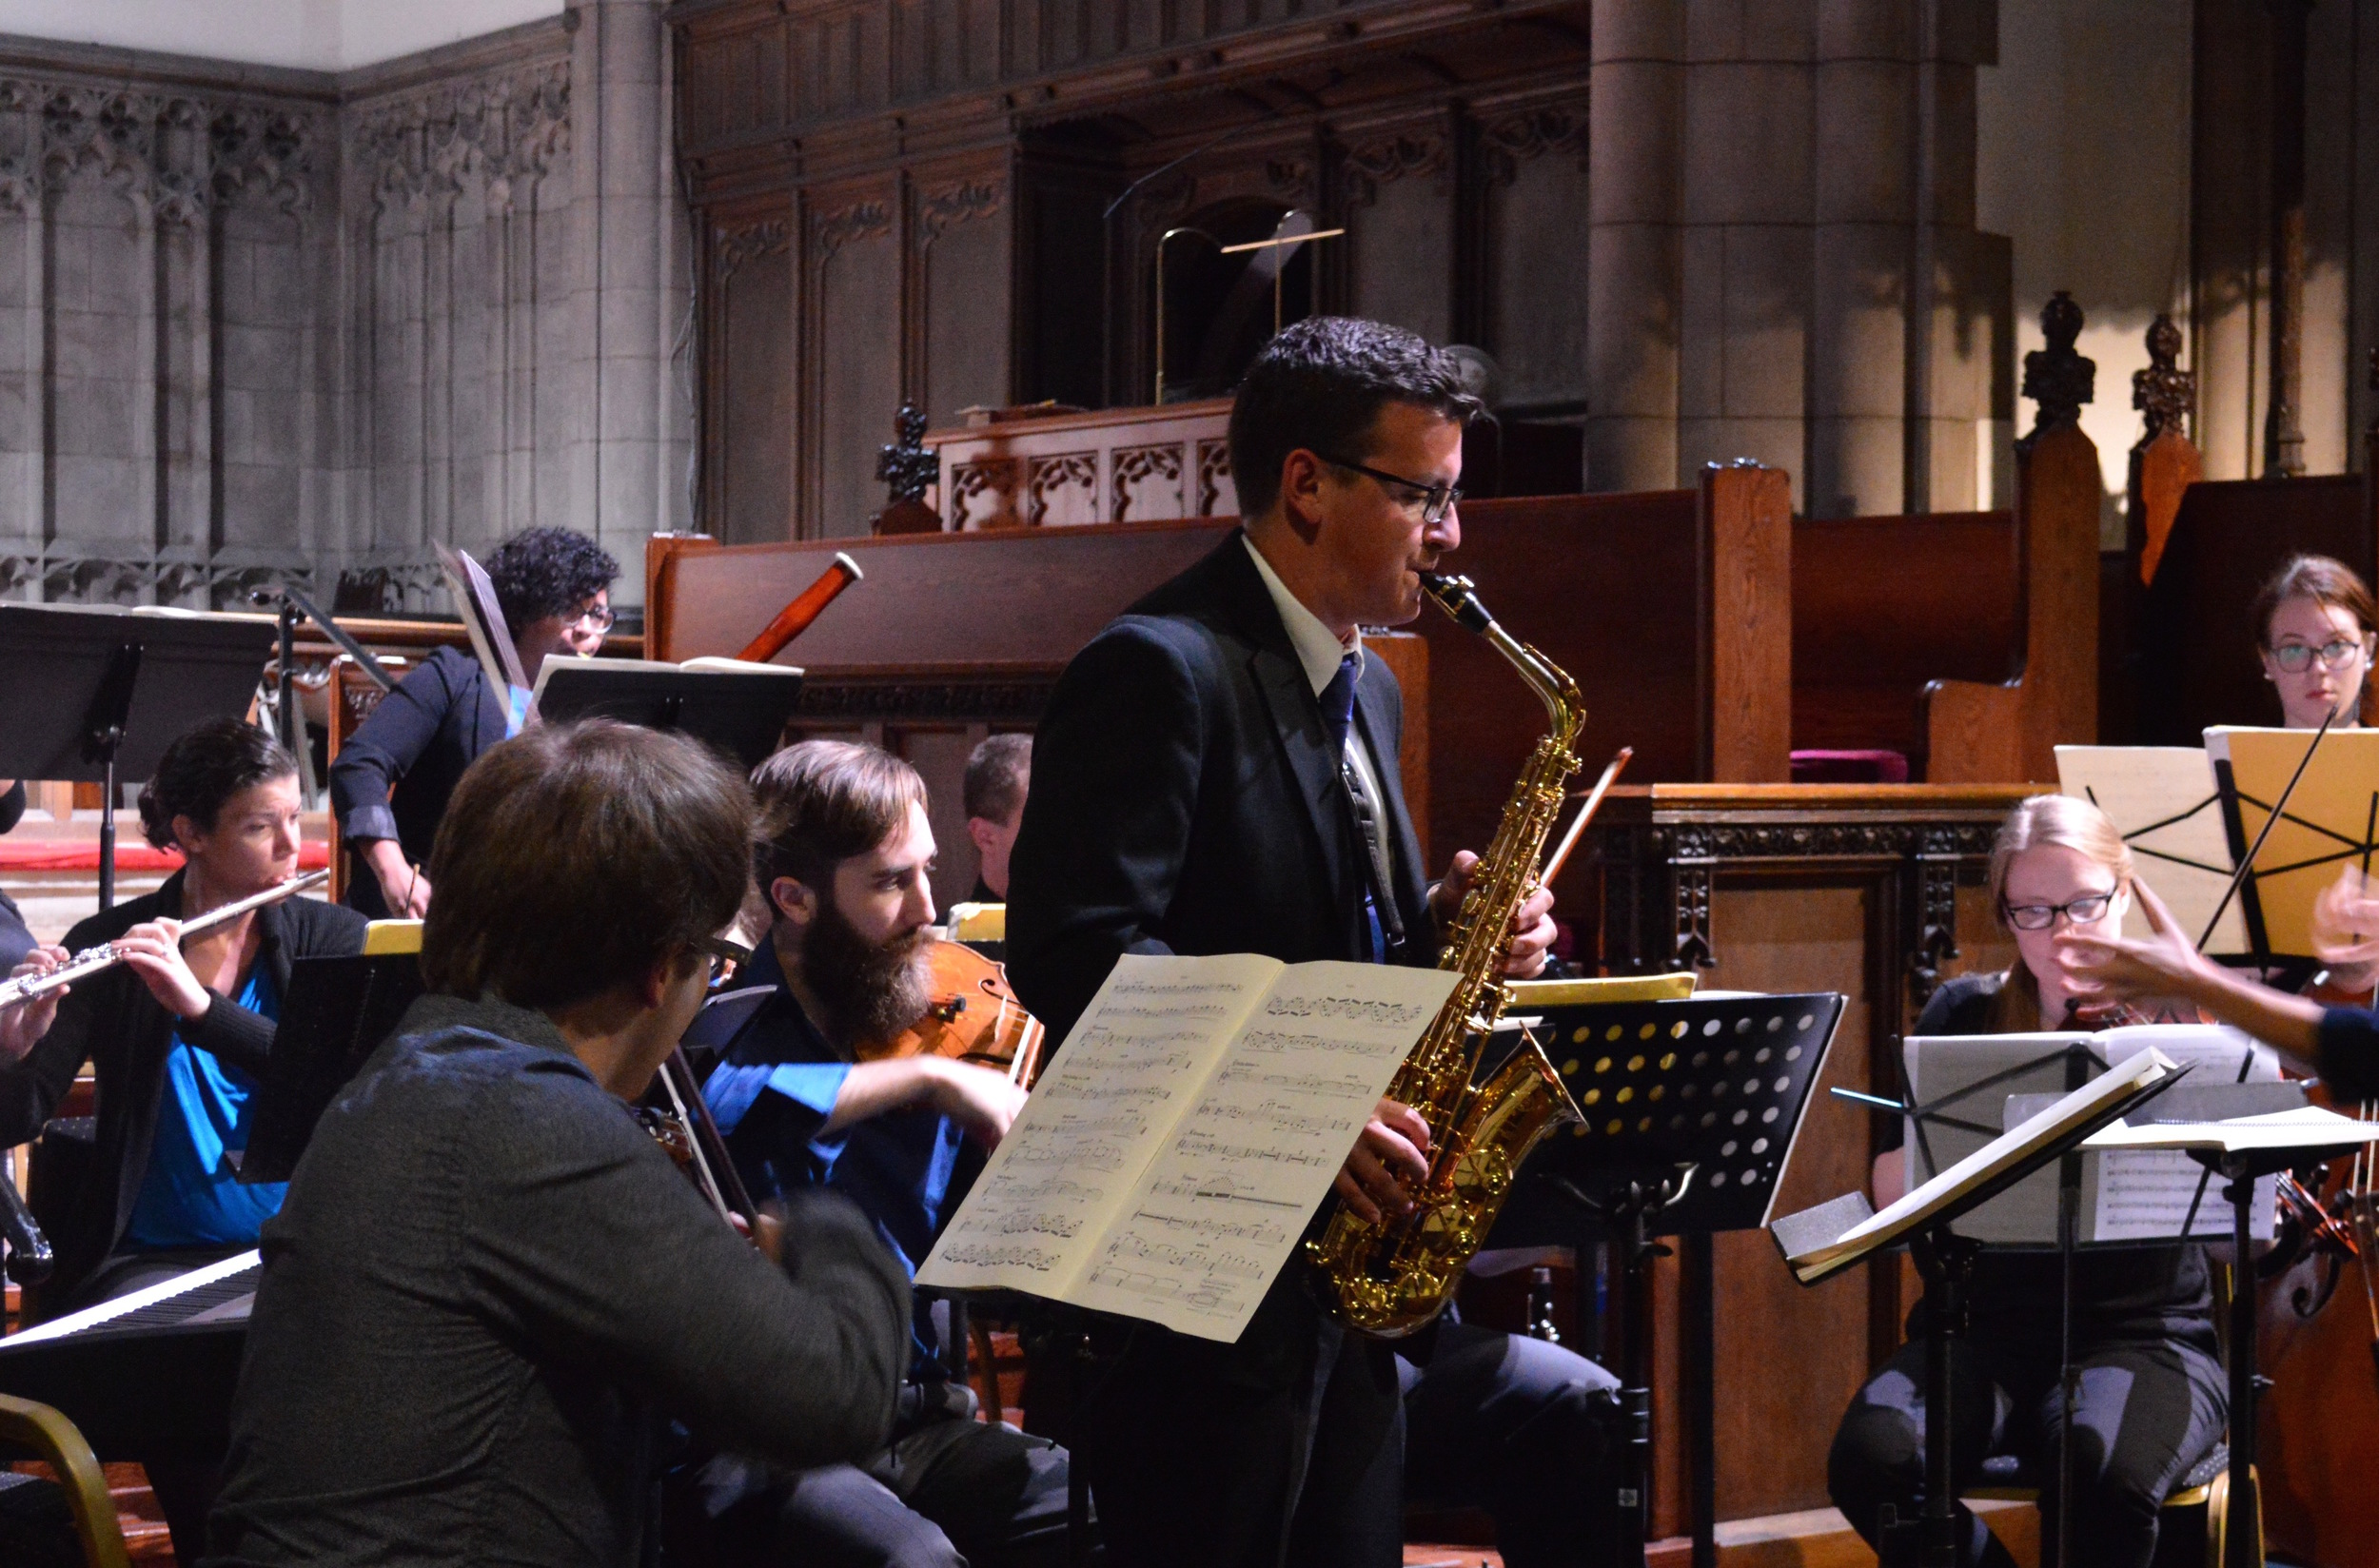 Saxophonist Sean Meyers solos with Symphony Number One. September, 2015.